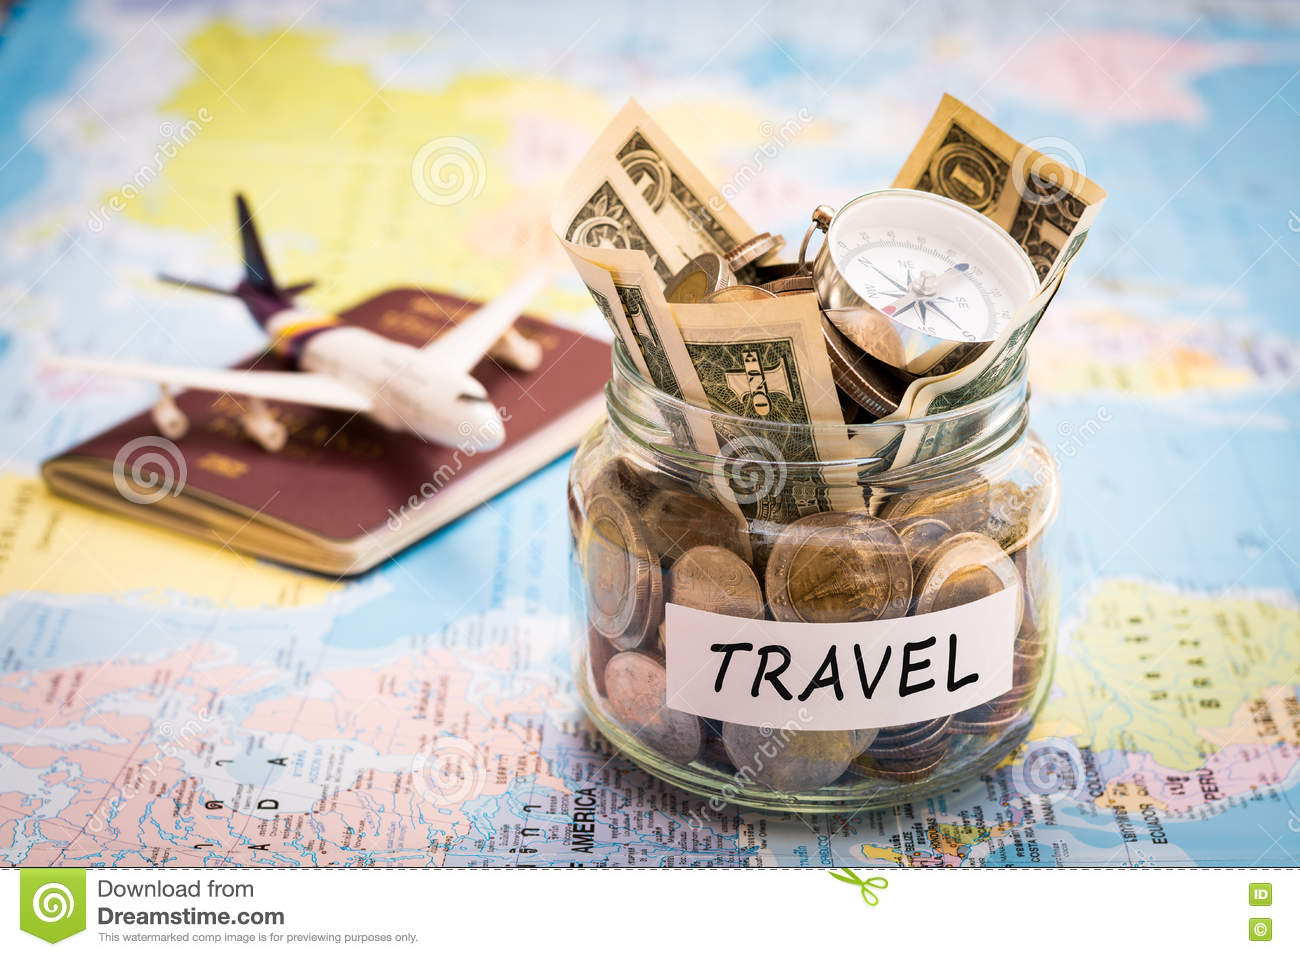 Travel Budget Concept. Travel Money Savings In A Glass Jar With ...